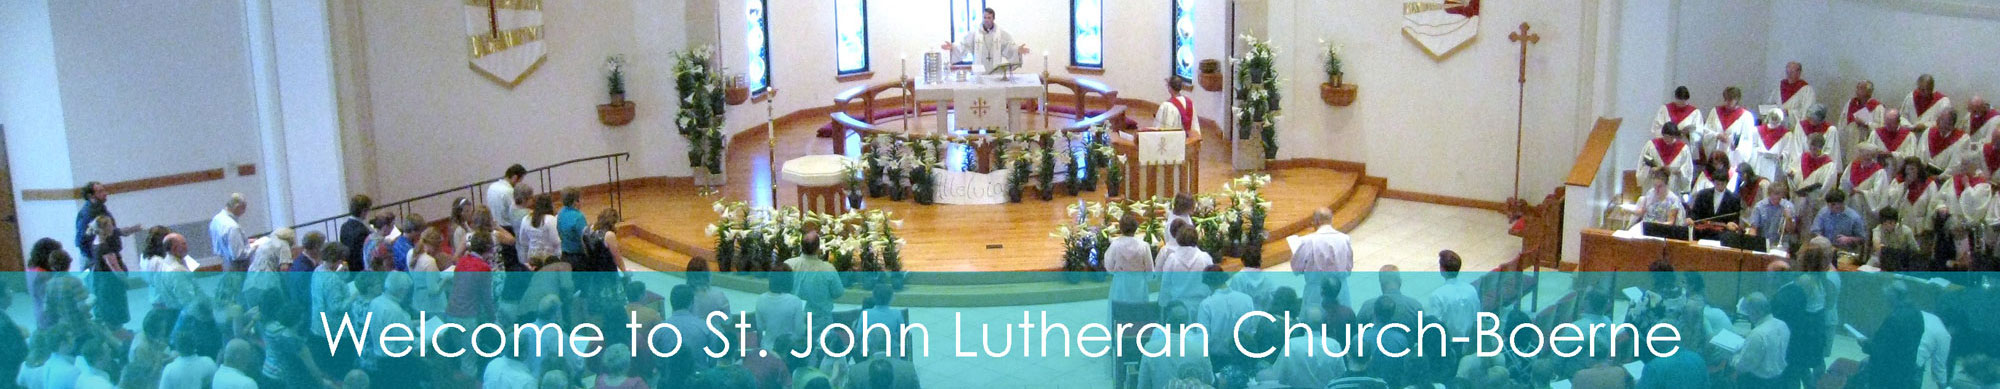 St. John Lutheran Church in Boerne